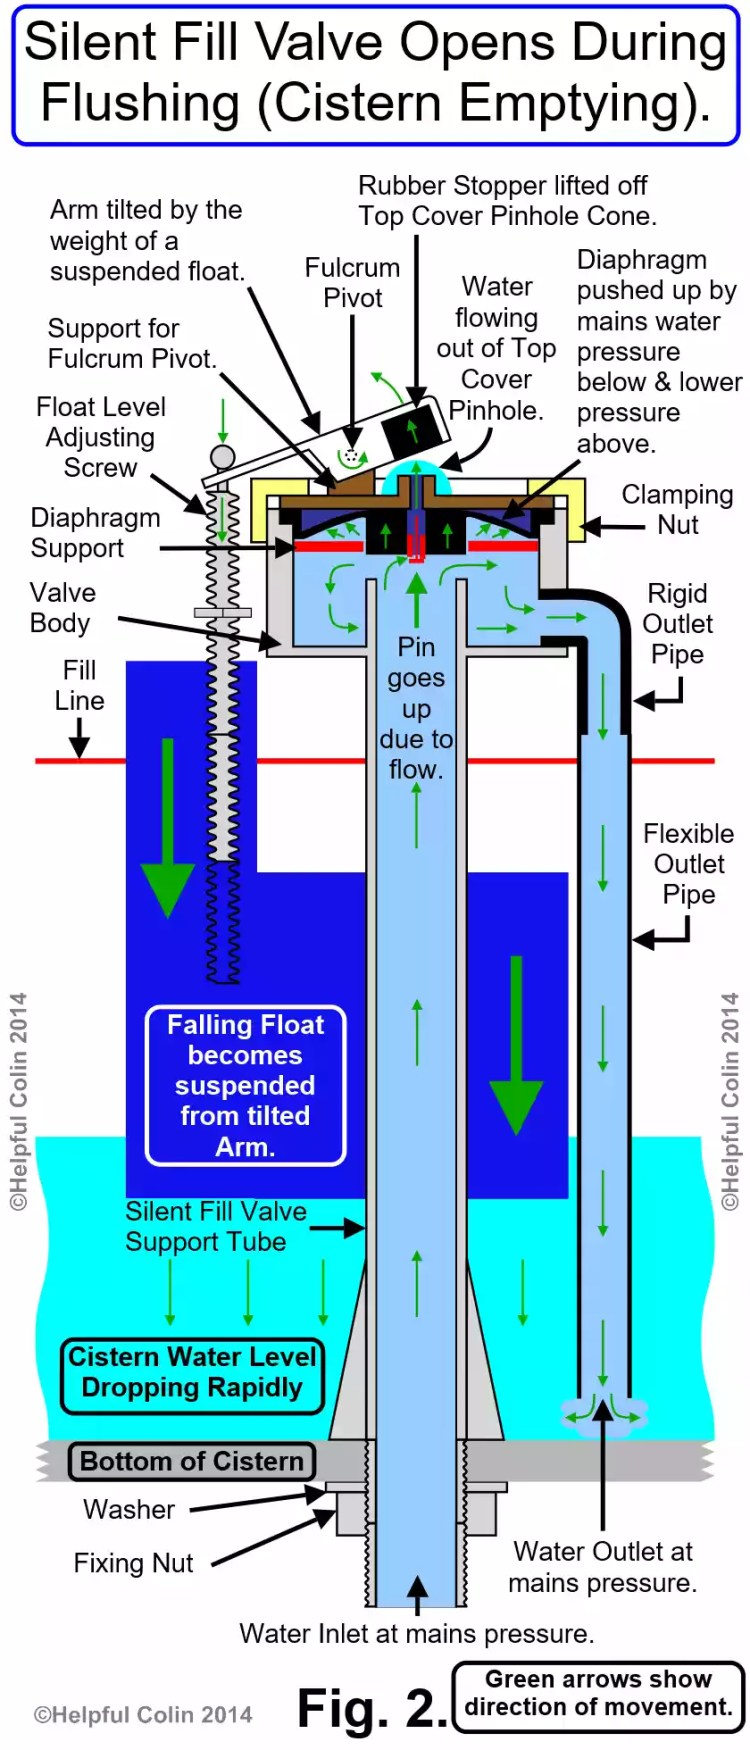 Silent Fill Valve Opens During Flushing (Cistern Emptying)